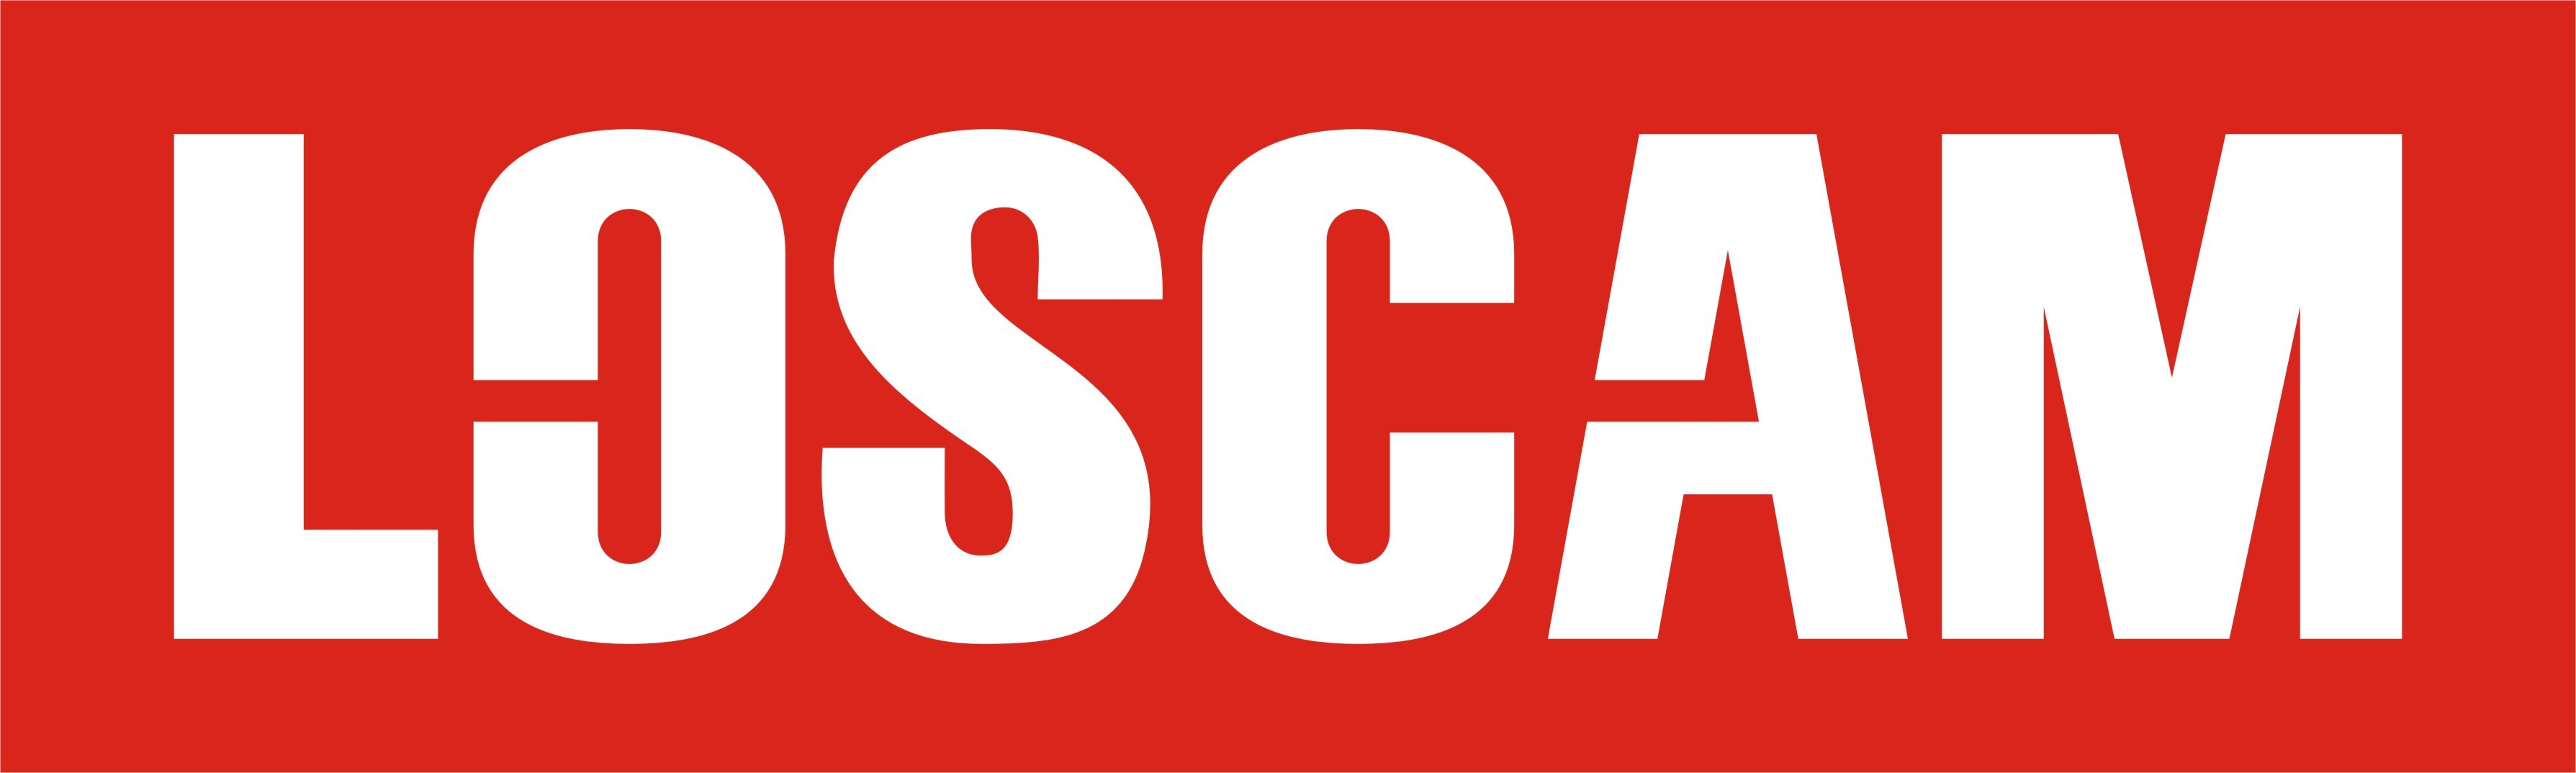 Loscam is a Silver Sponsor of the Swannies in 2013.